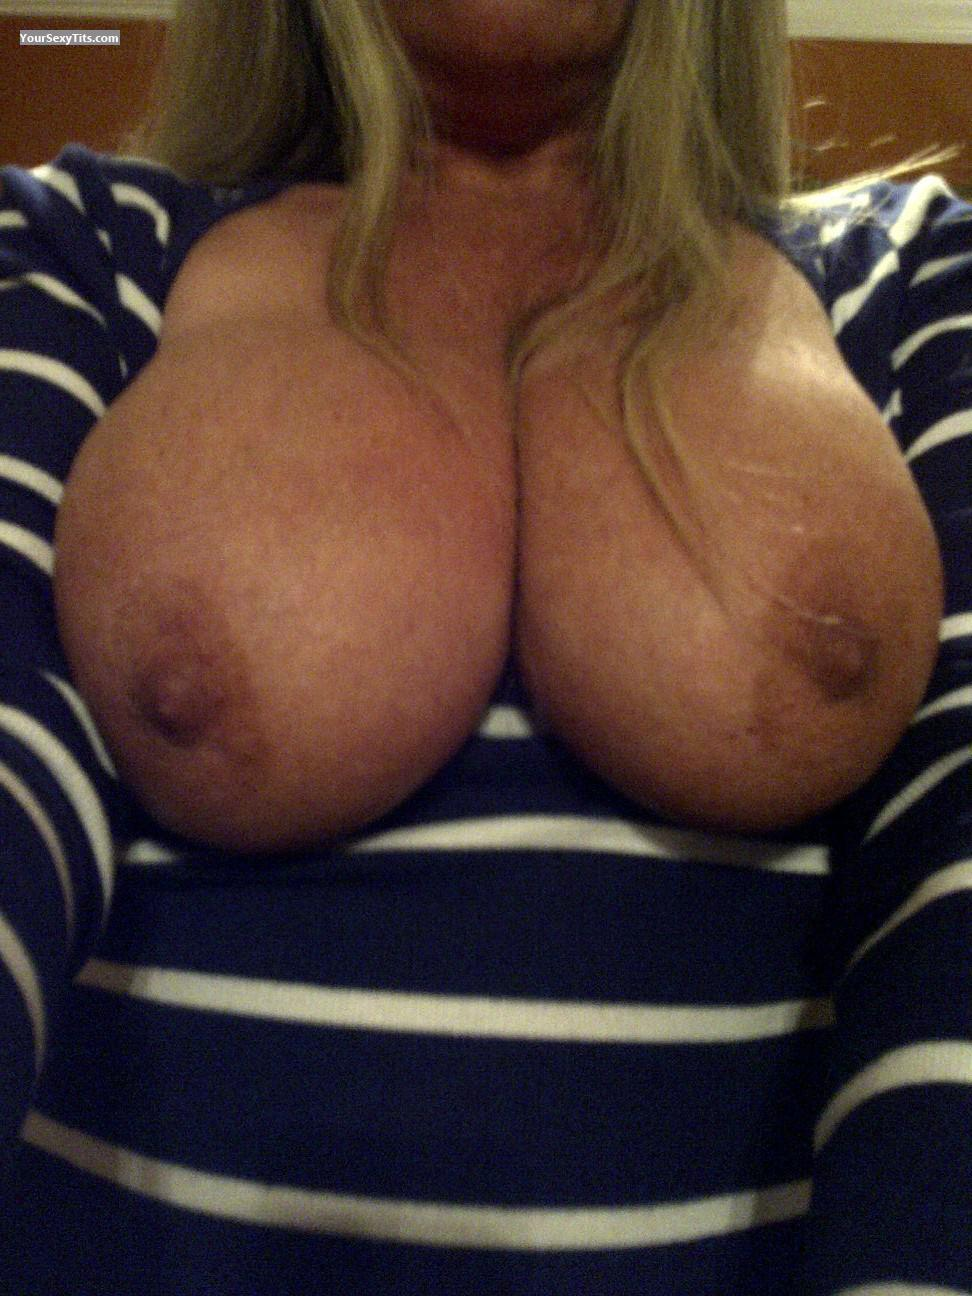 Tit Flash: My Very Big Tits (Selfie) - Mississippi Girl from United States